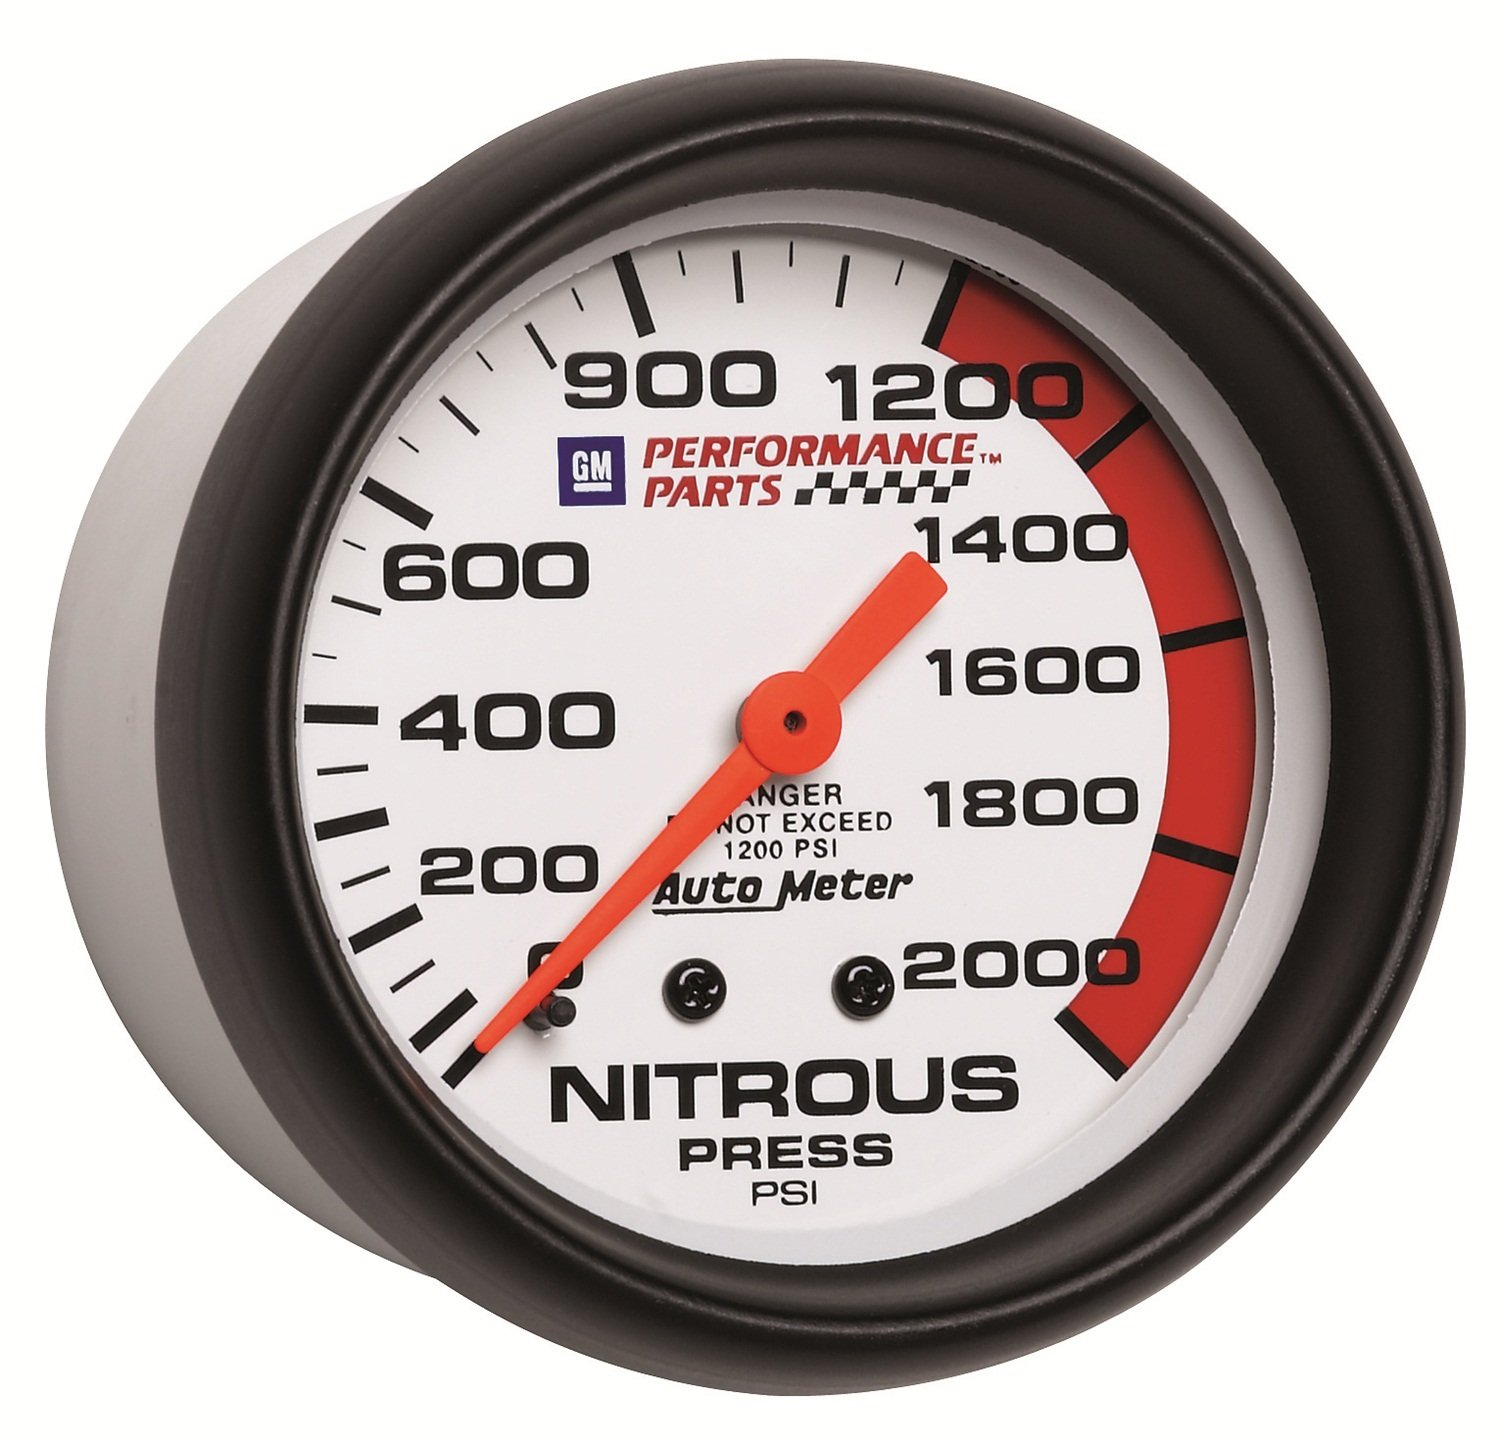 Auto Meter 5828-00407 GM Performance Parts 2-5/8' 0-2000 PSI Mechanical Nitrous Pressure Gauge